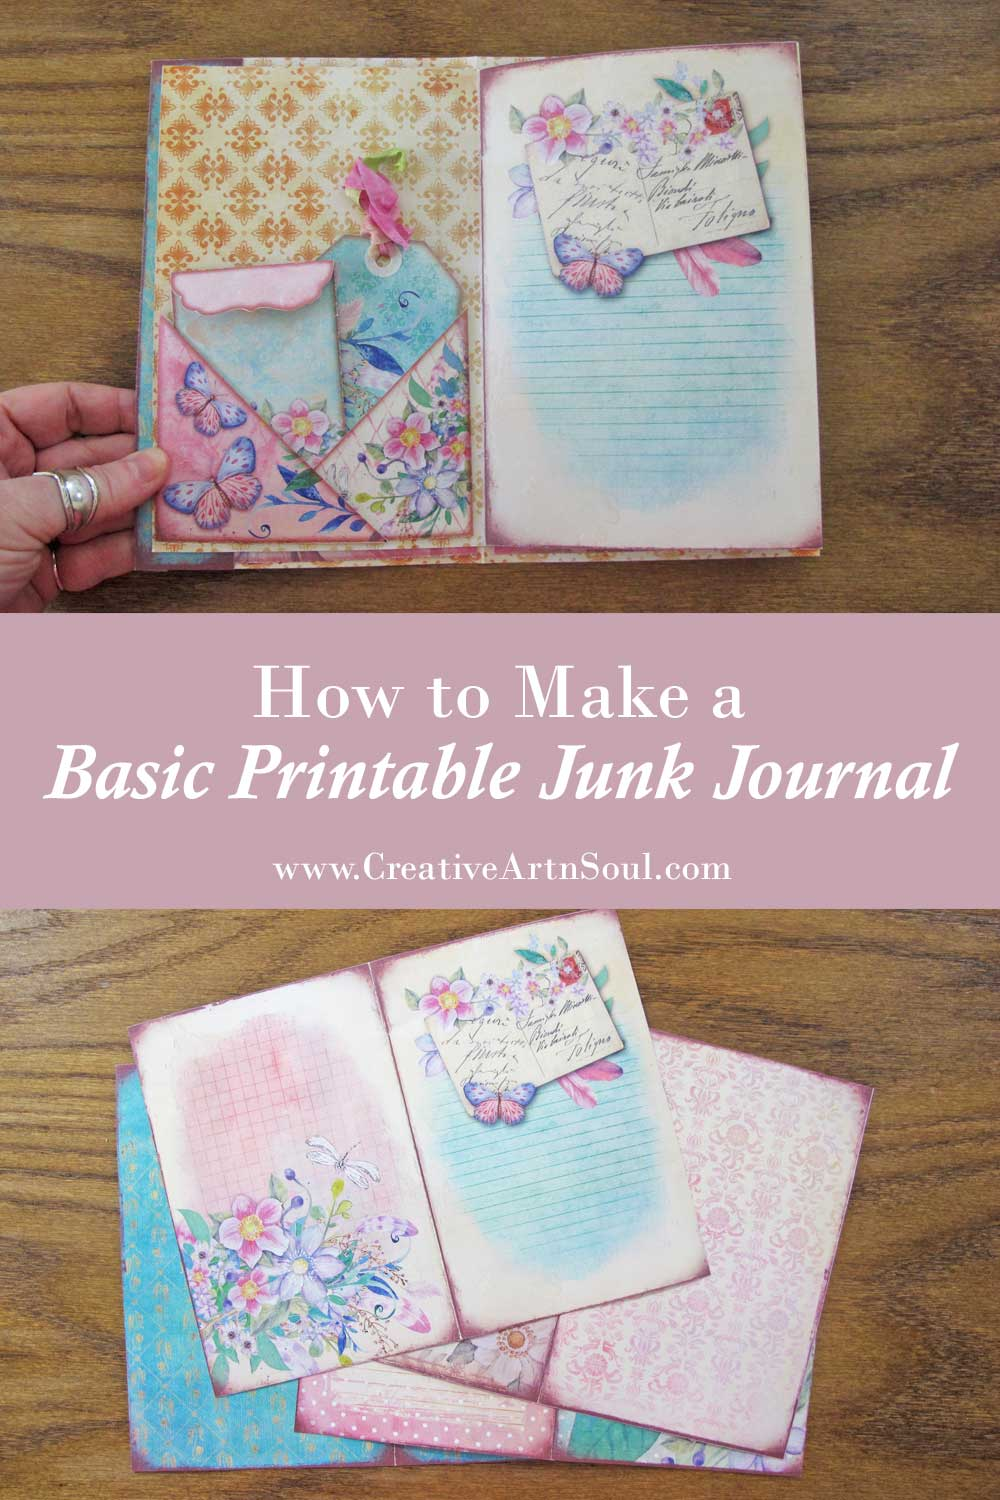 How to Make a Basic Printable Junk Journal